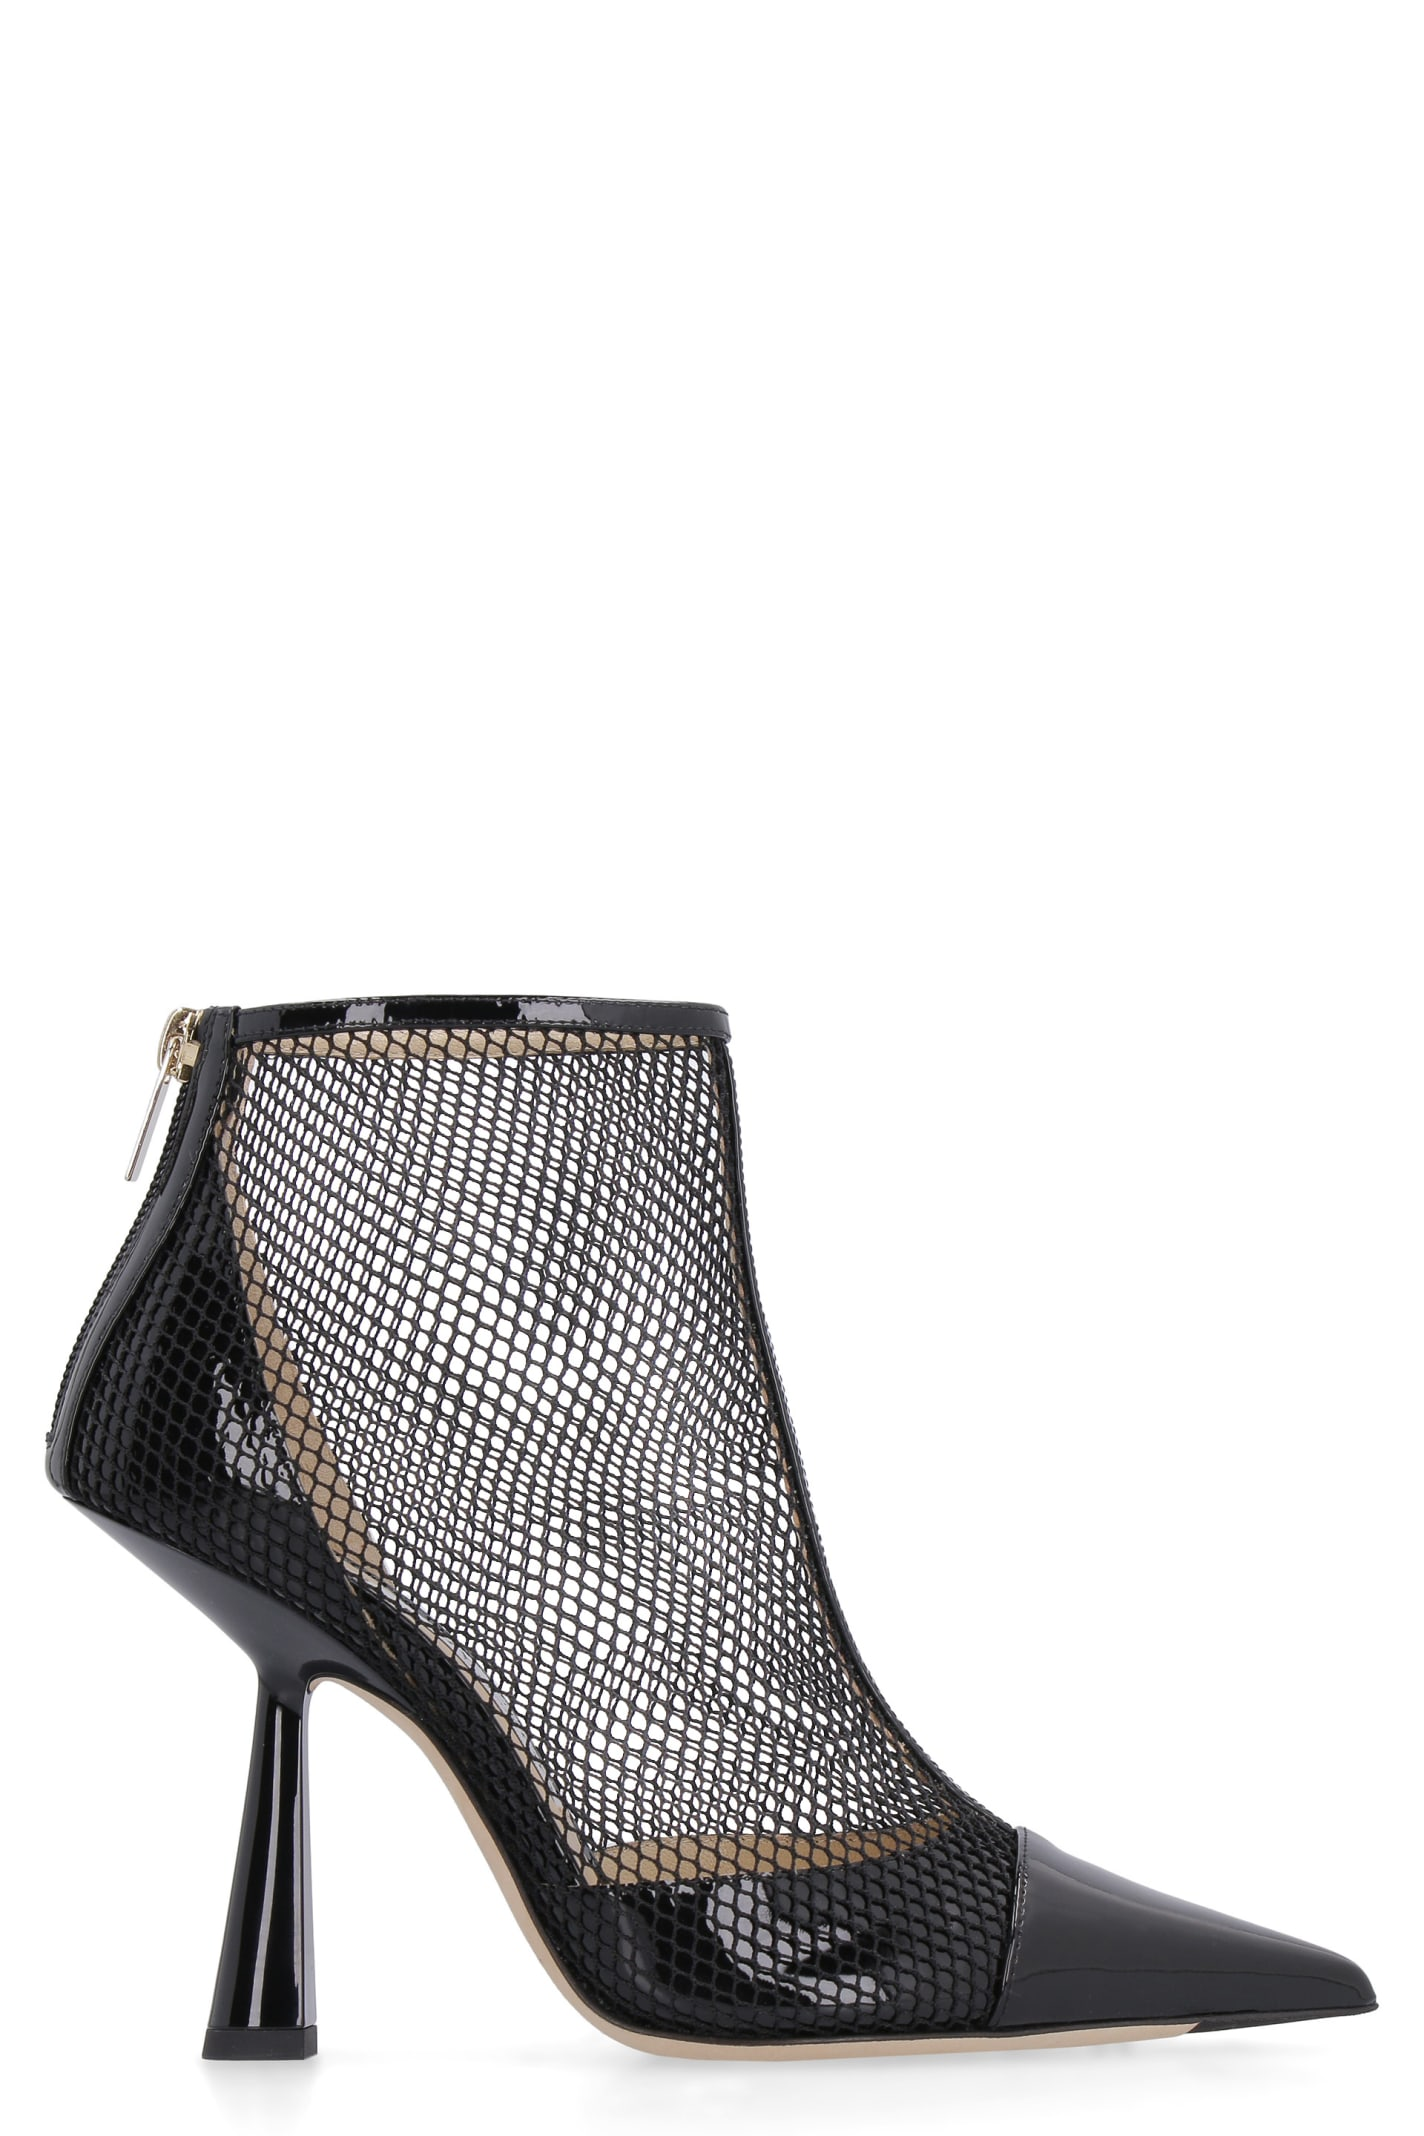 Jimmy Choo Kix Pointy-toe Ankle-boots